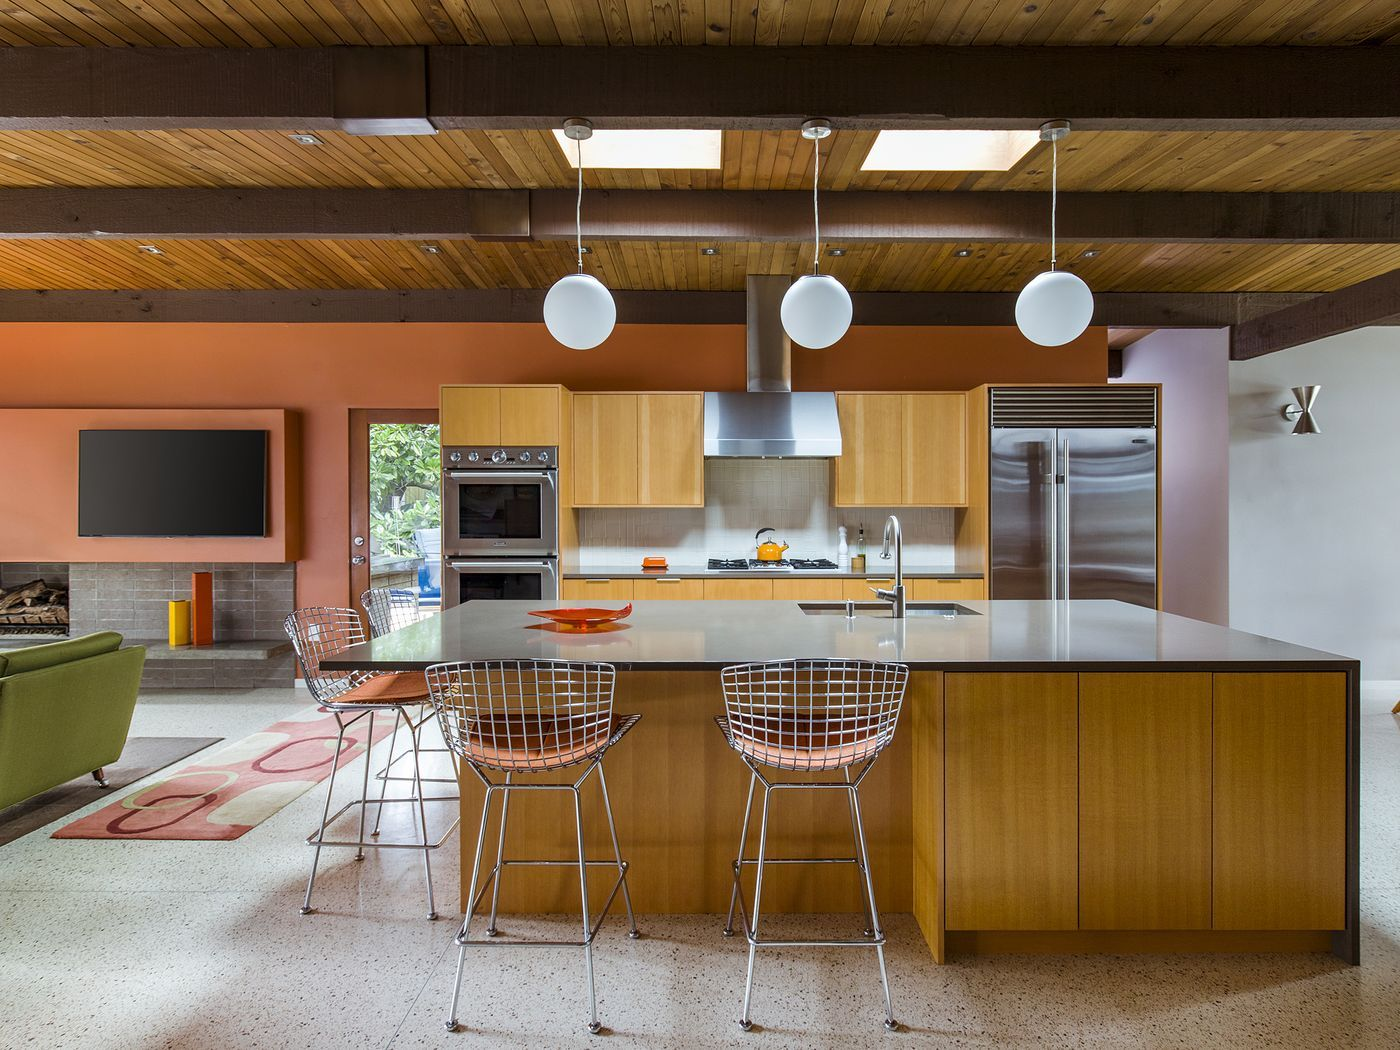 Remaking midcentury modern in Portland - Curbed | ranch | Pinterest